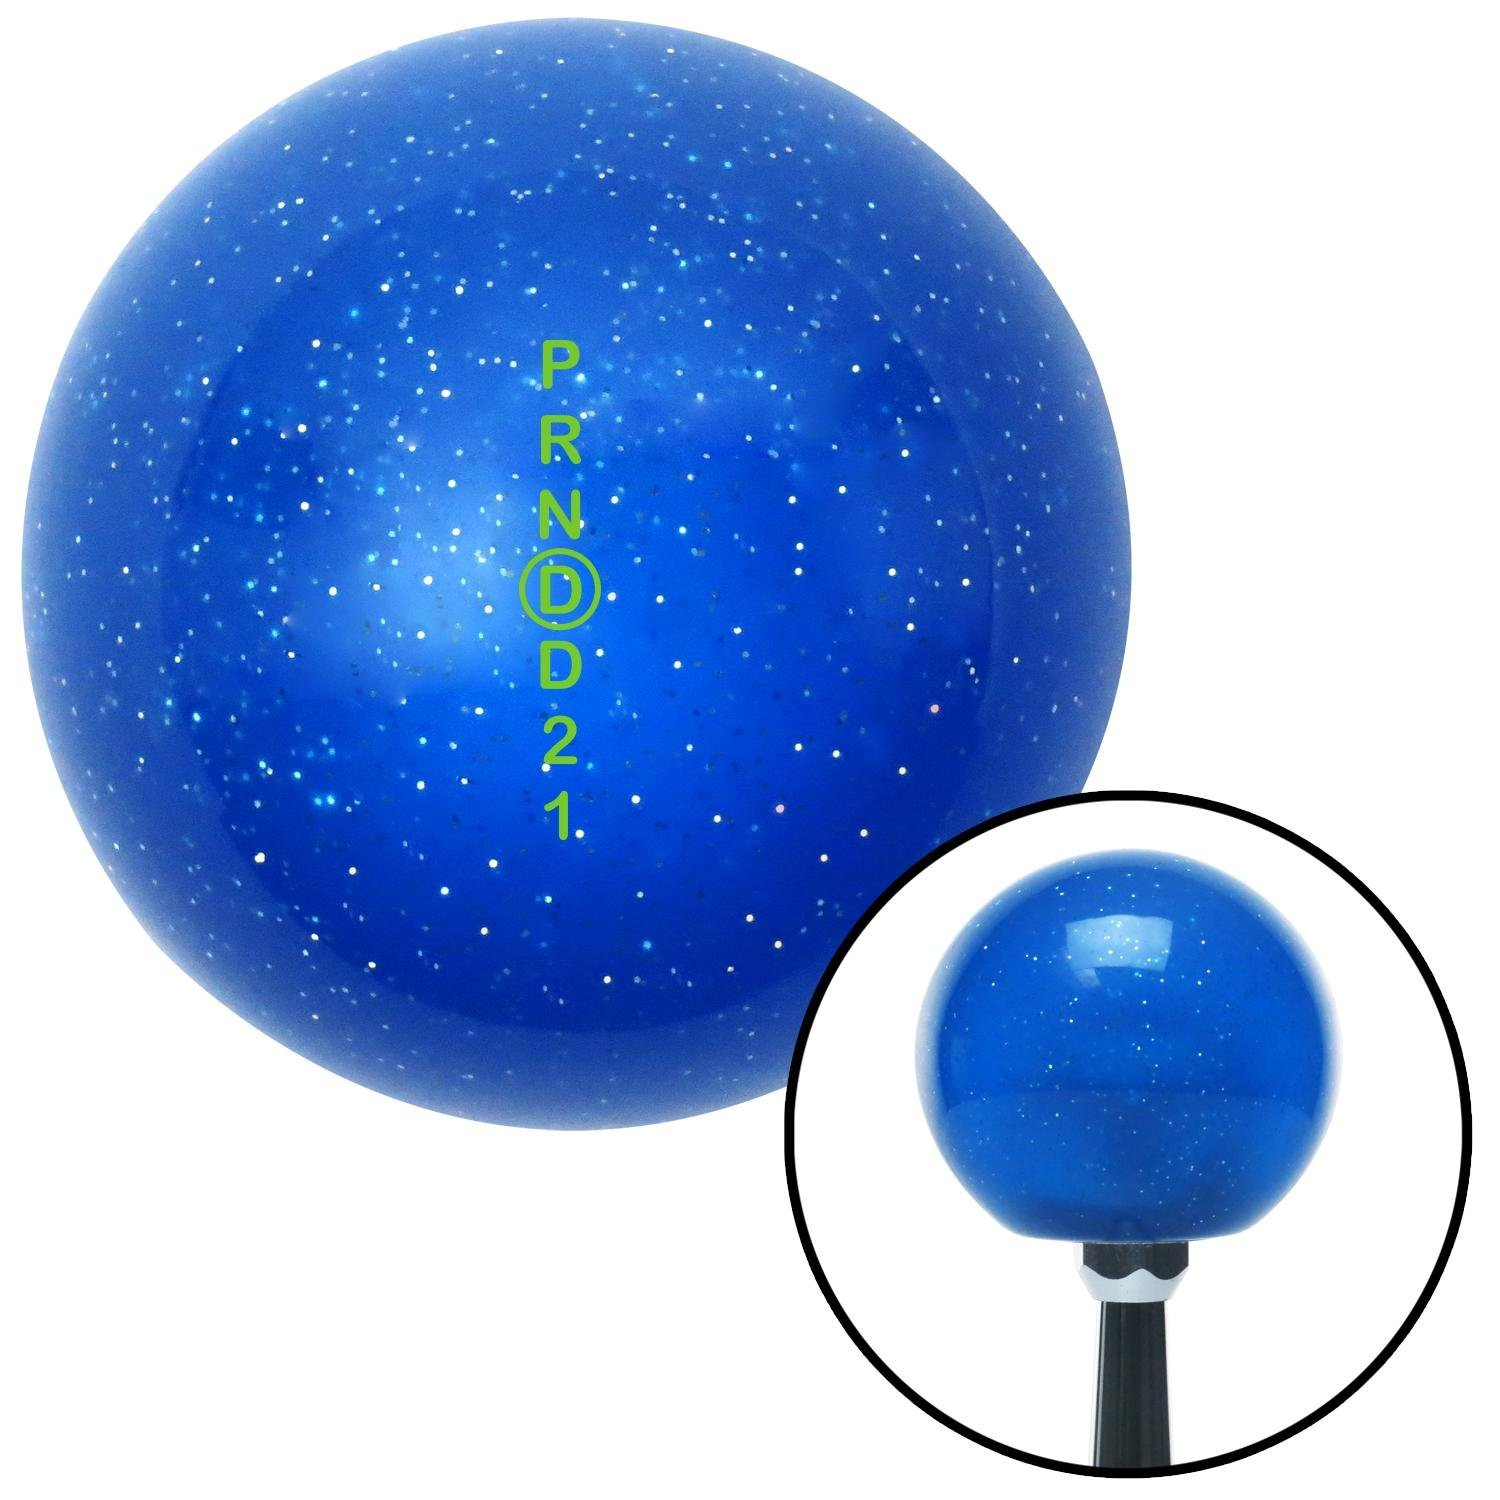 American Shifter 78915 Blue Metal Flake Shift Knob with M16 x 1.5 Insert Green Shift Pattern 28n